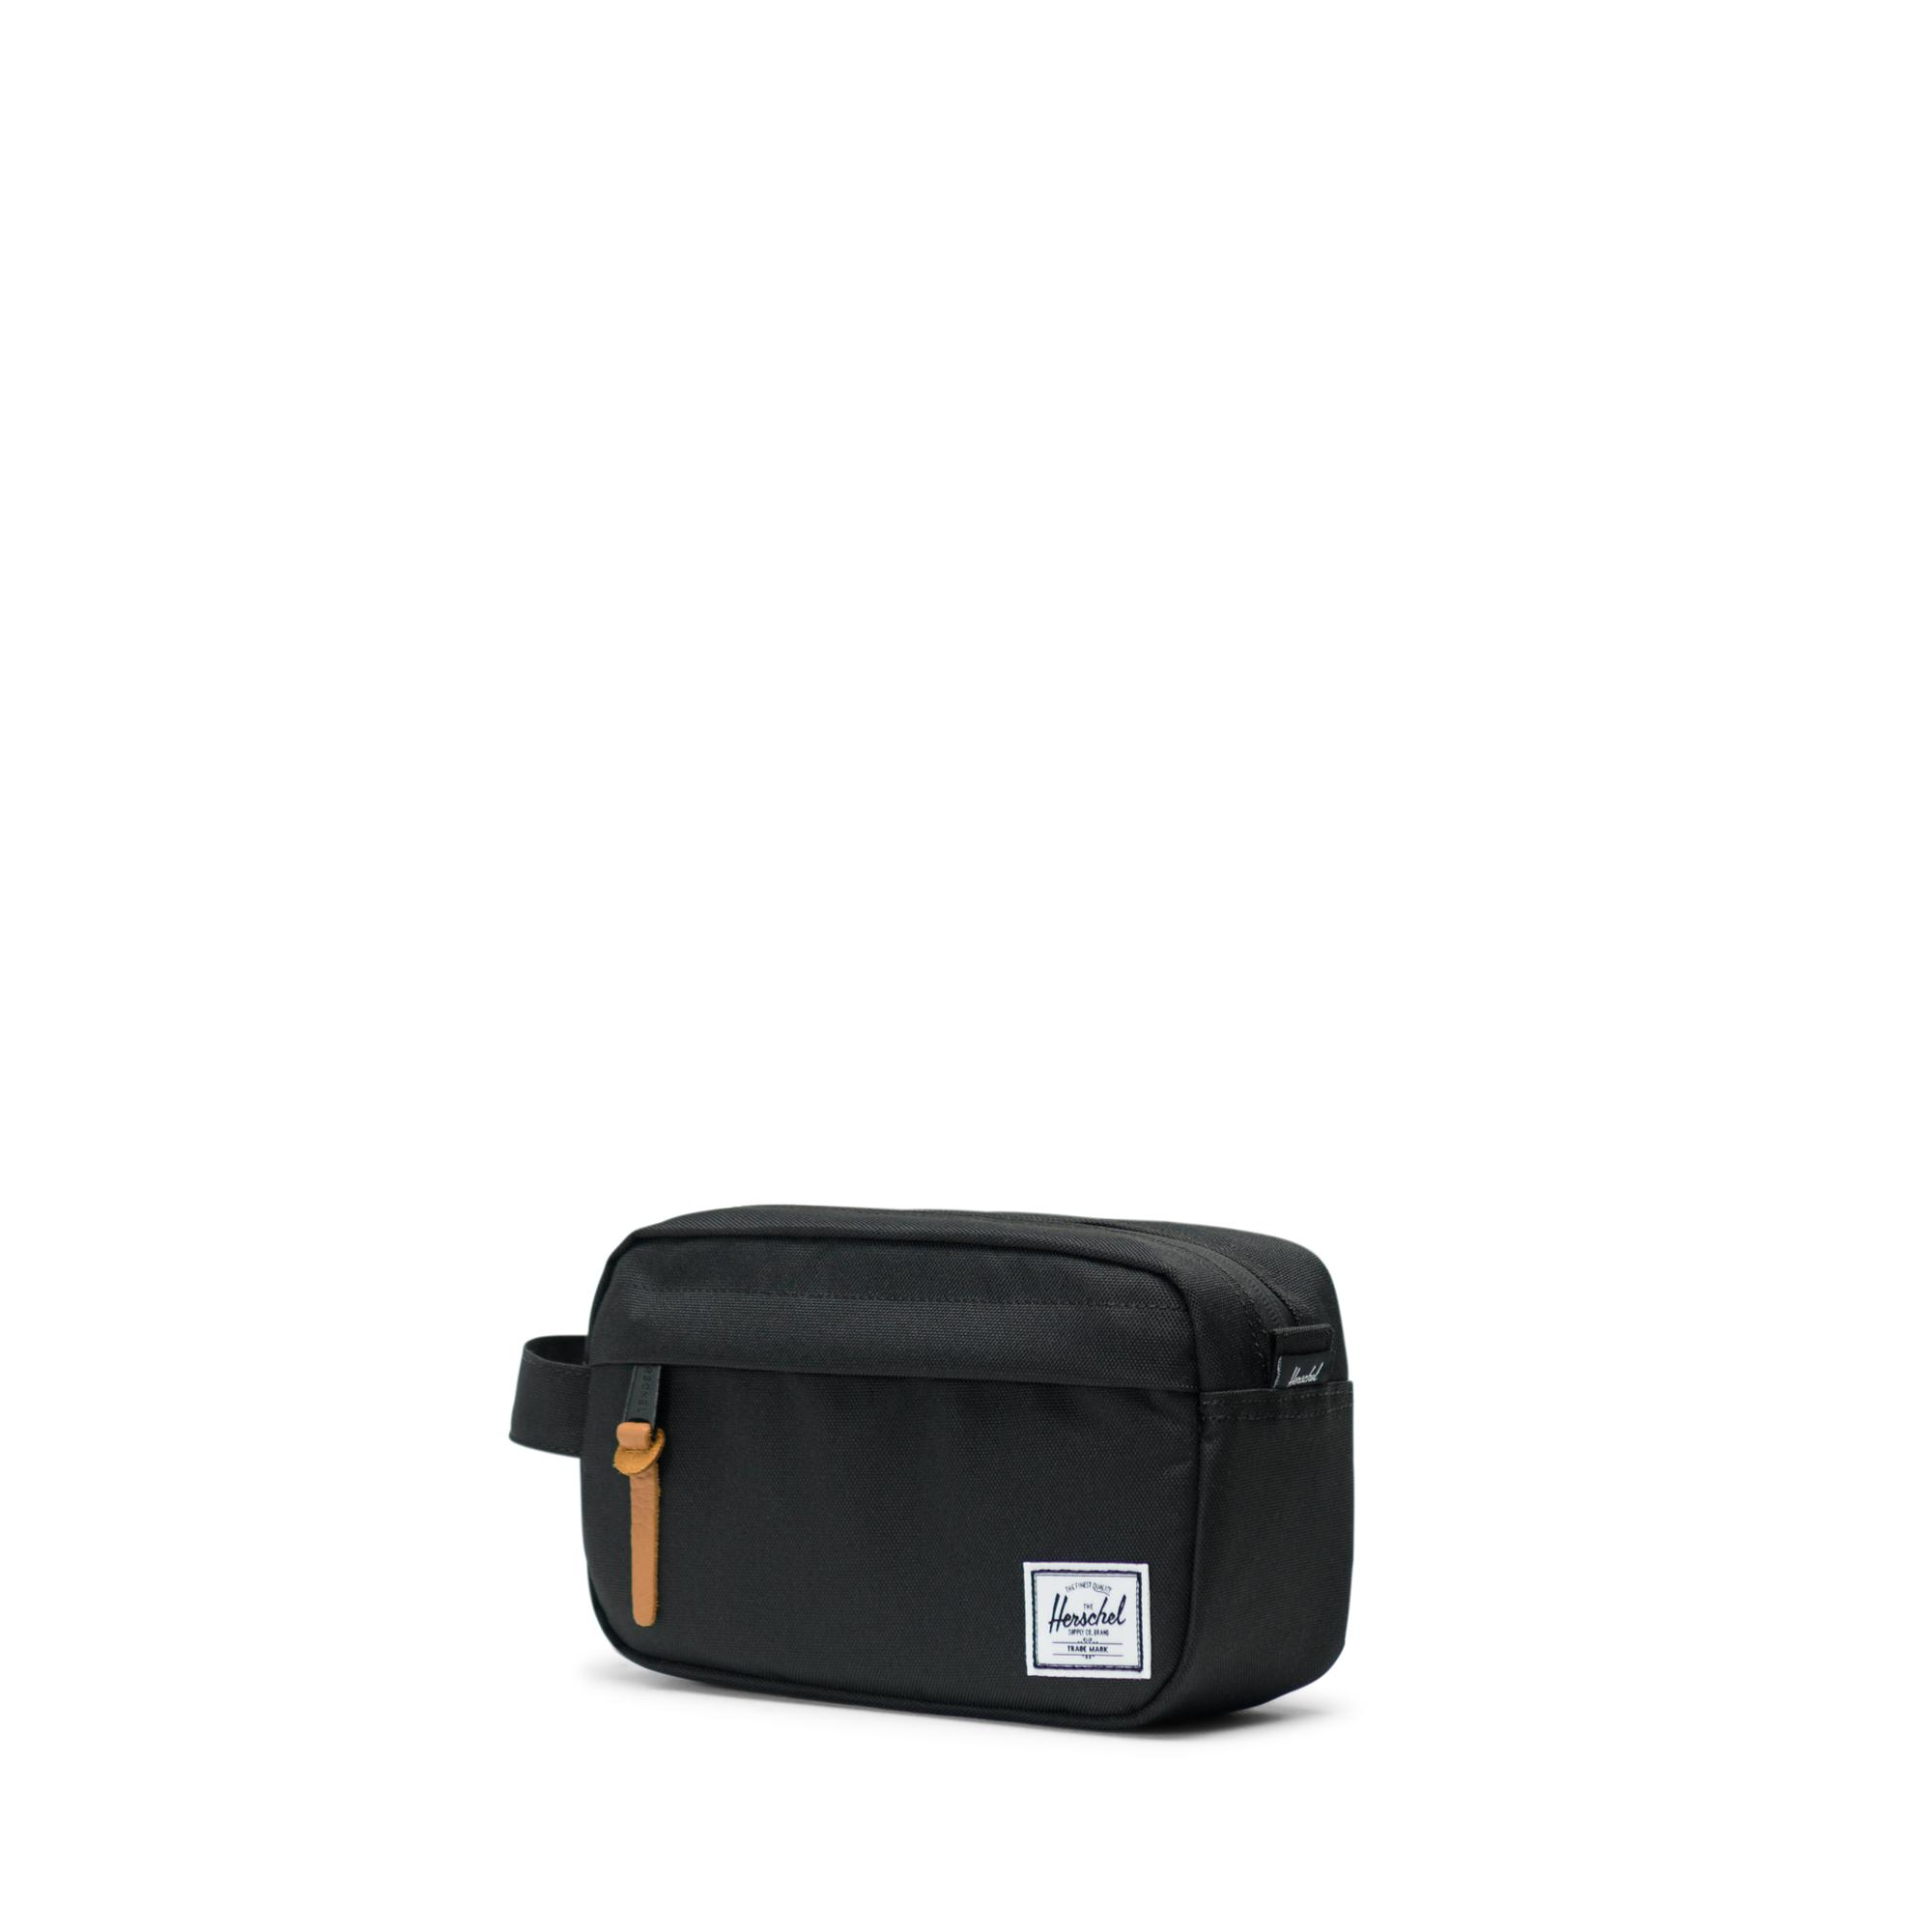 7b6eb0e21390 Chapter Travel Kit Carry-On